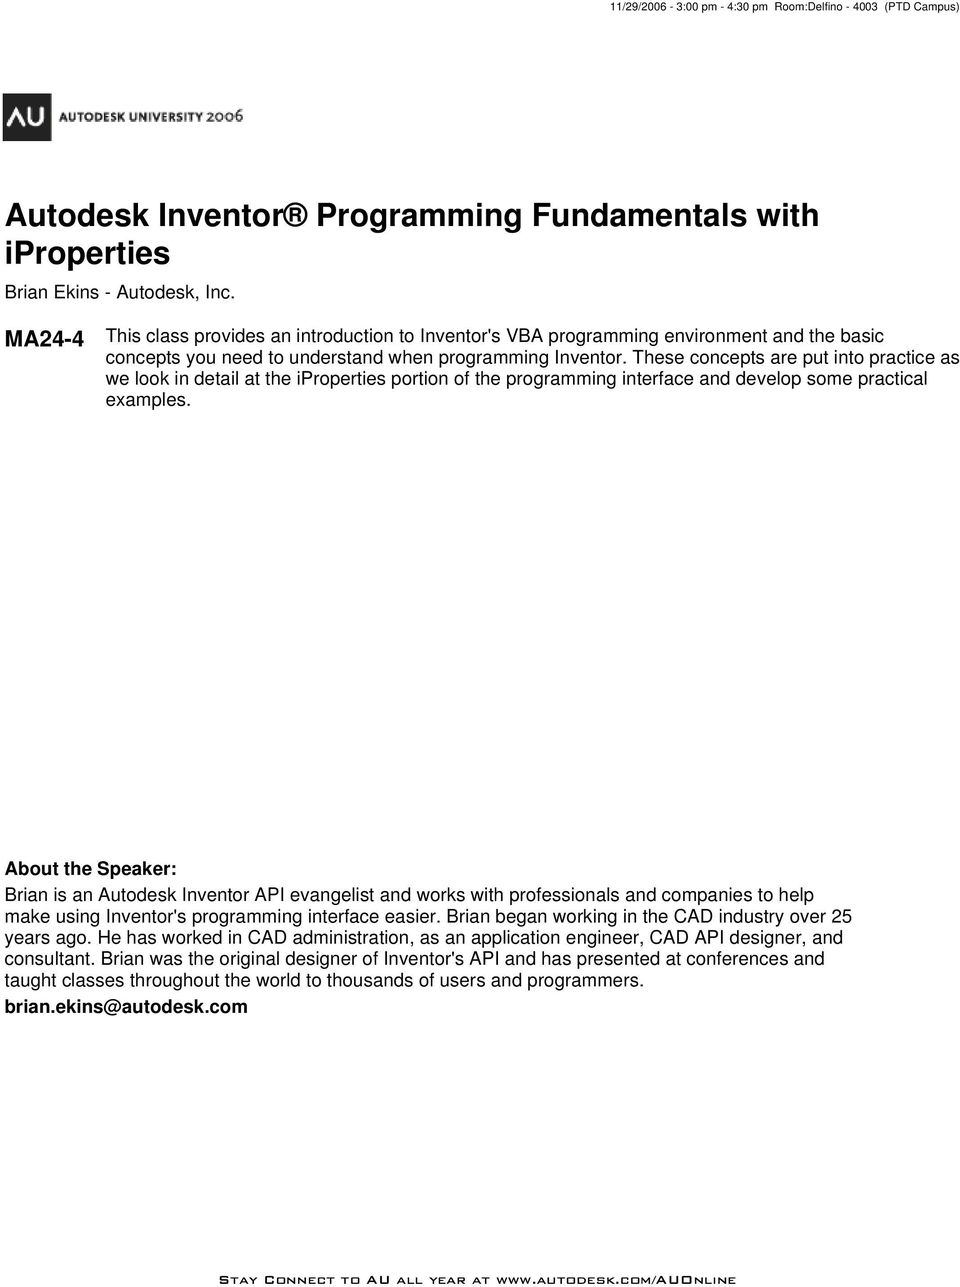 Autodesk Inventor Programming Fundamentals with iproperties - PDF